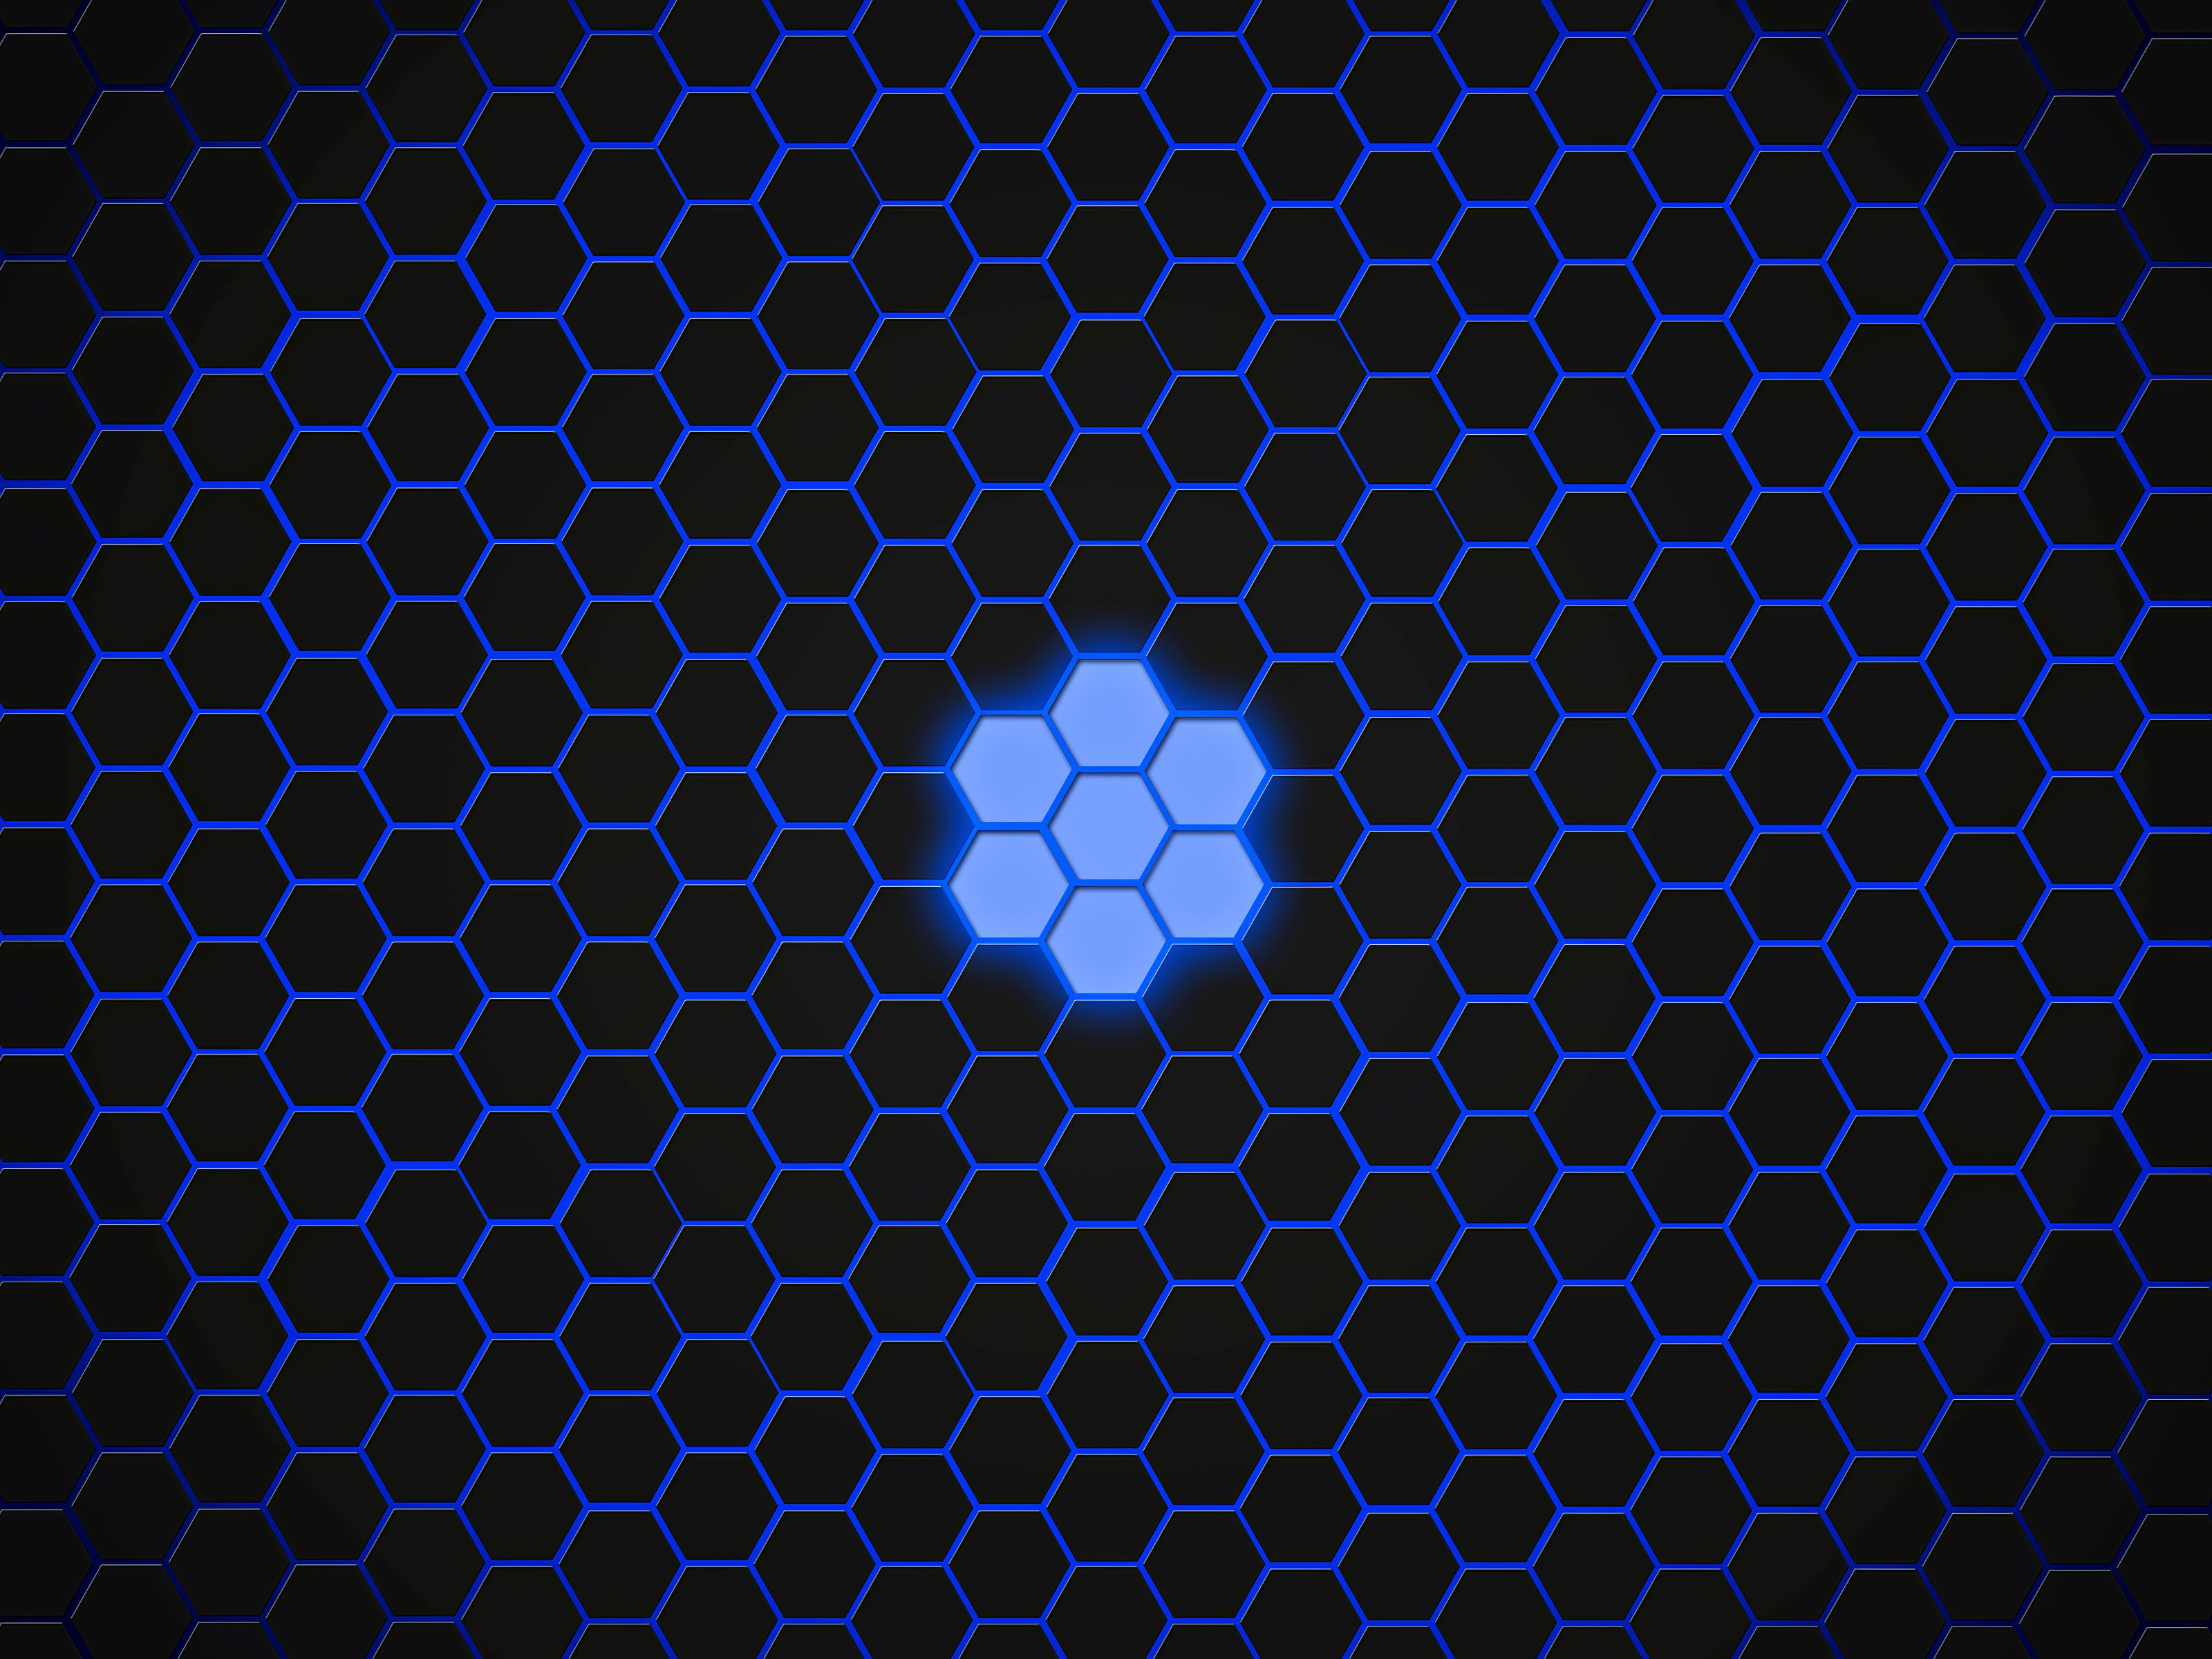 112745 download wallpaper Textures, Texture, Hexagons, Dark, Patterns screensavers and pictures for free